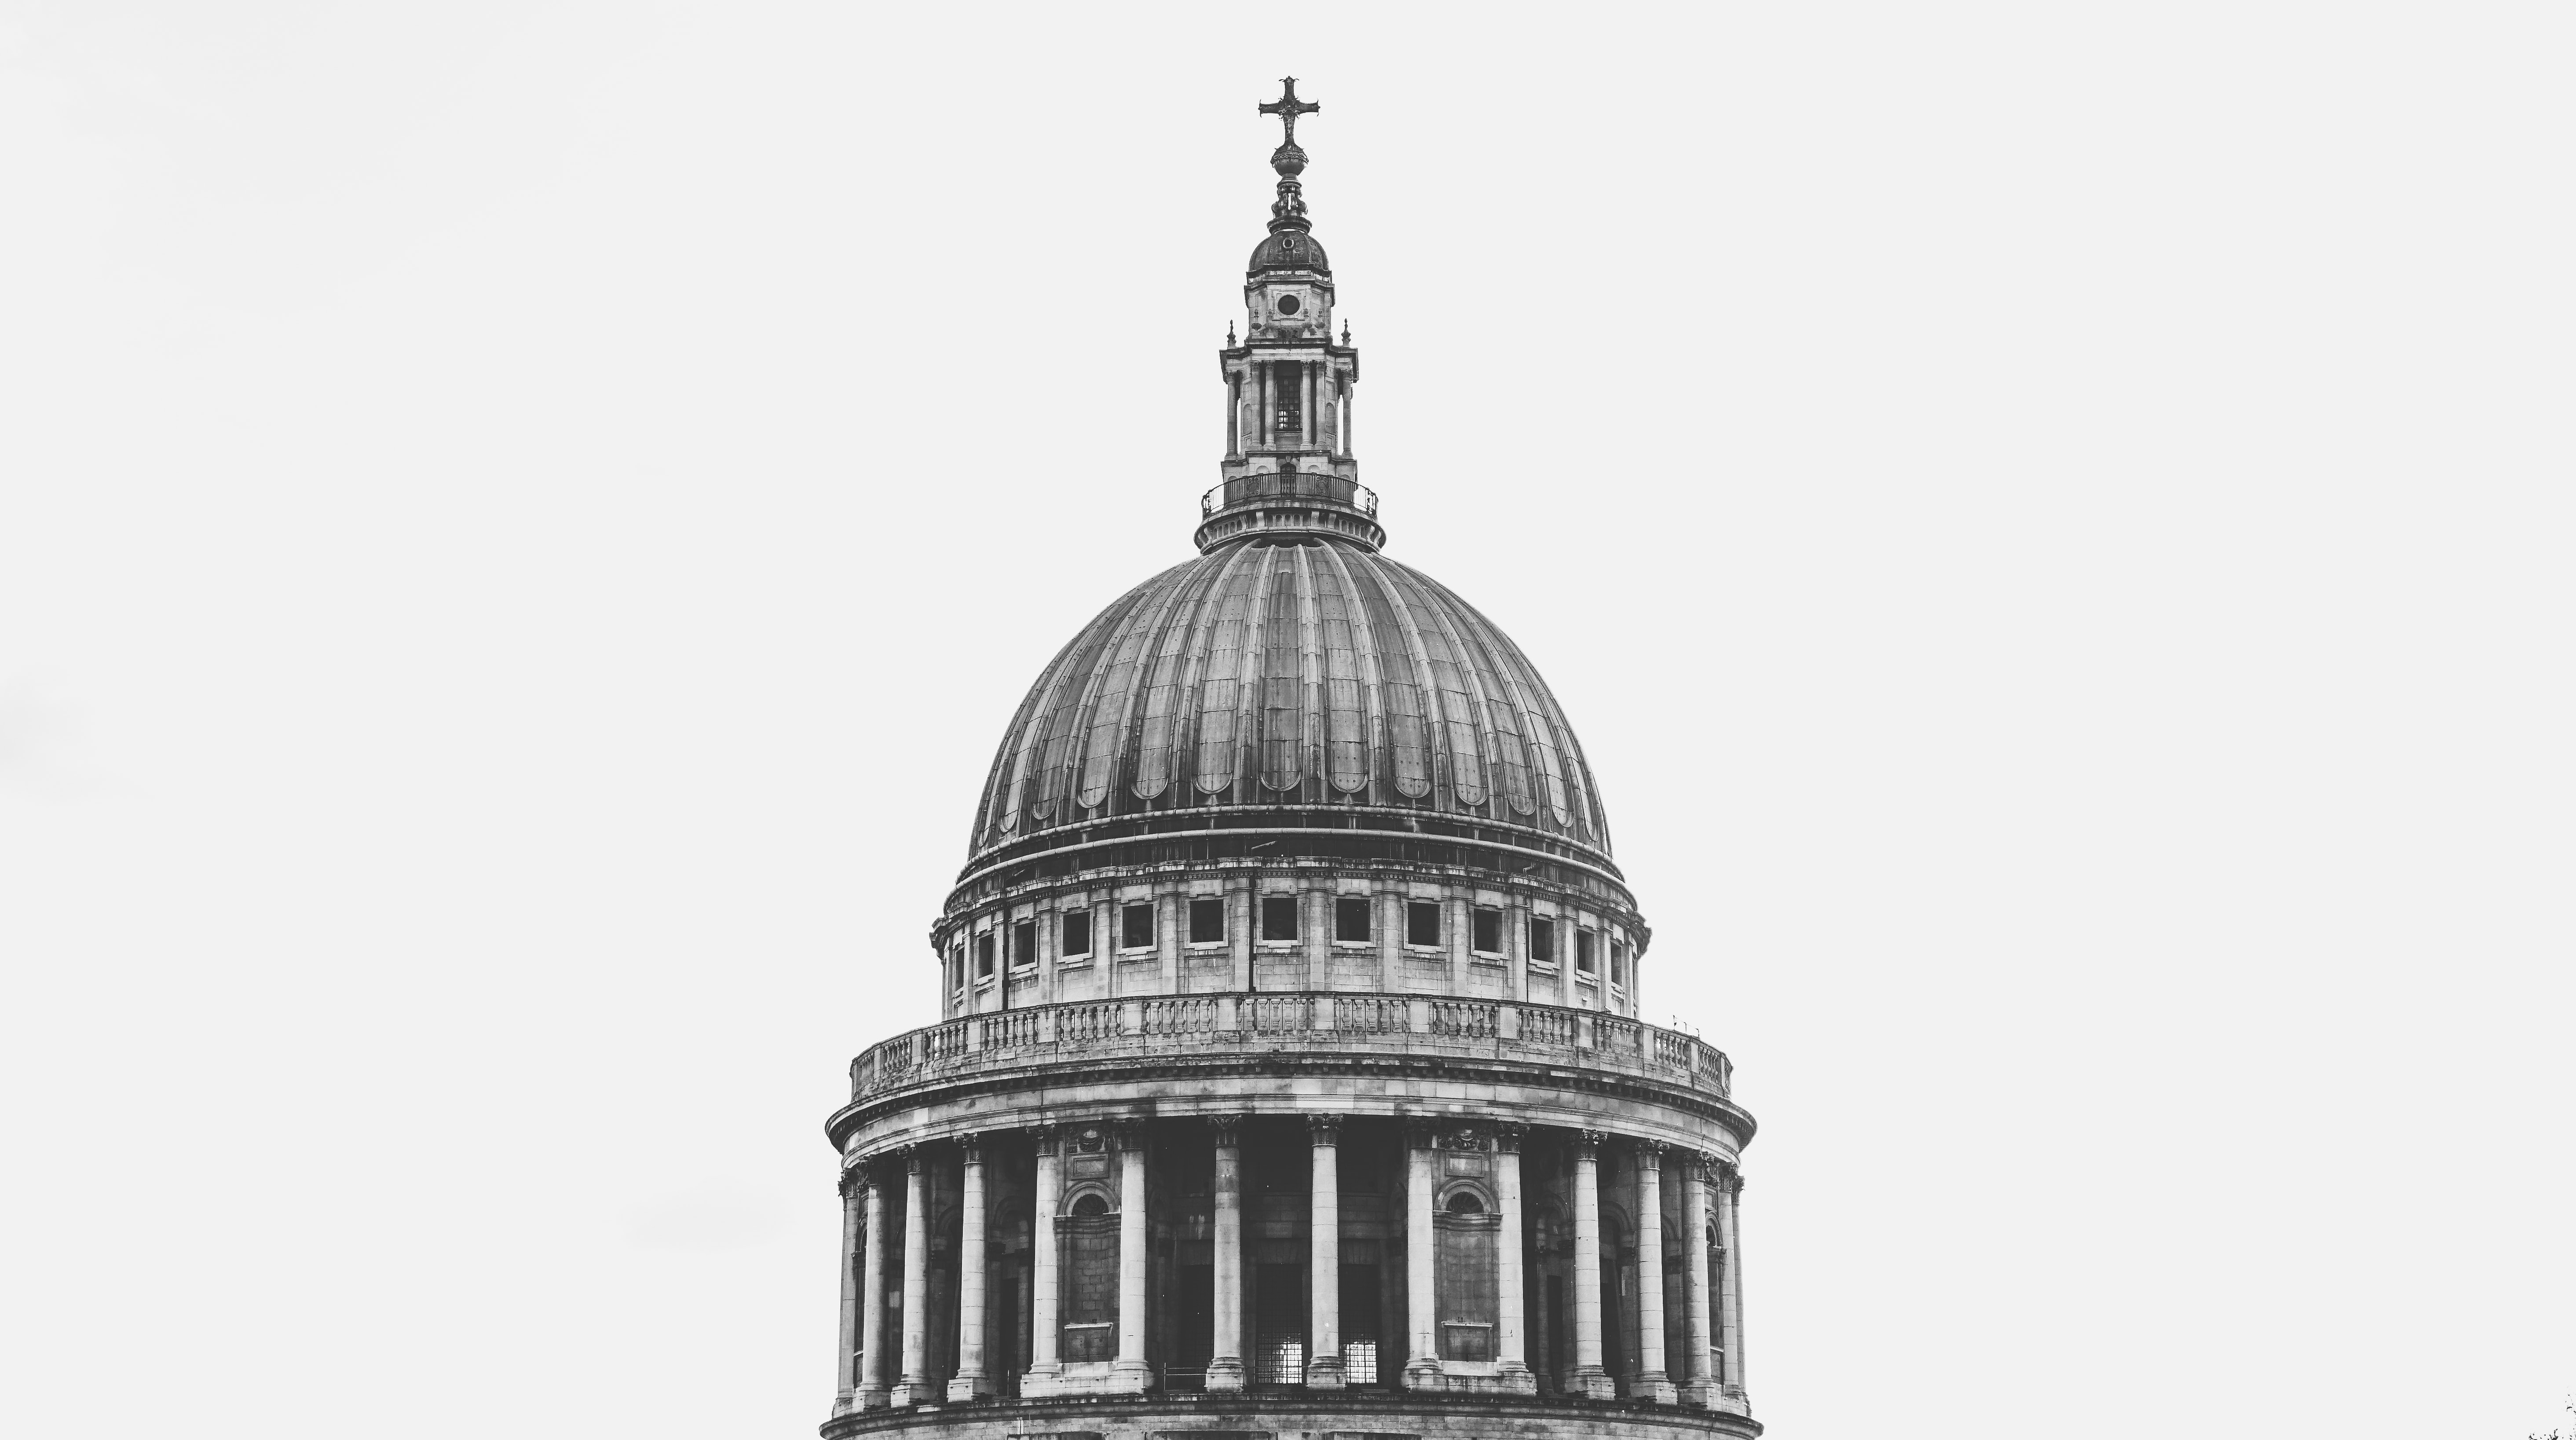 dome building with cross on top